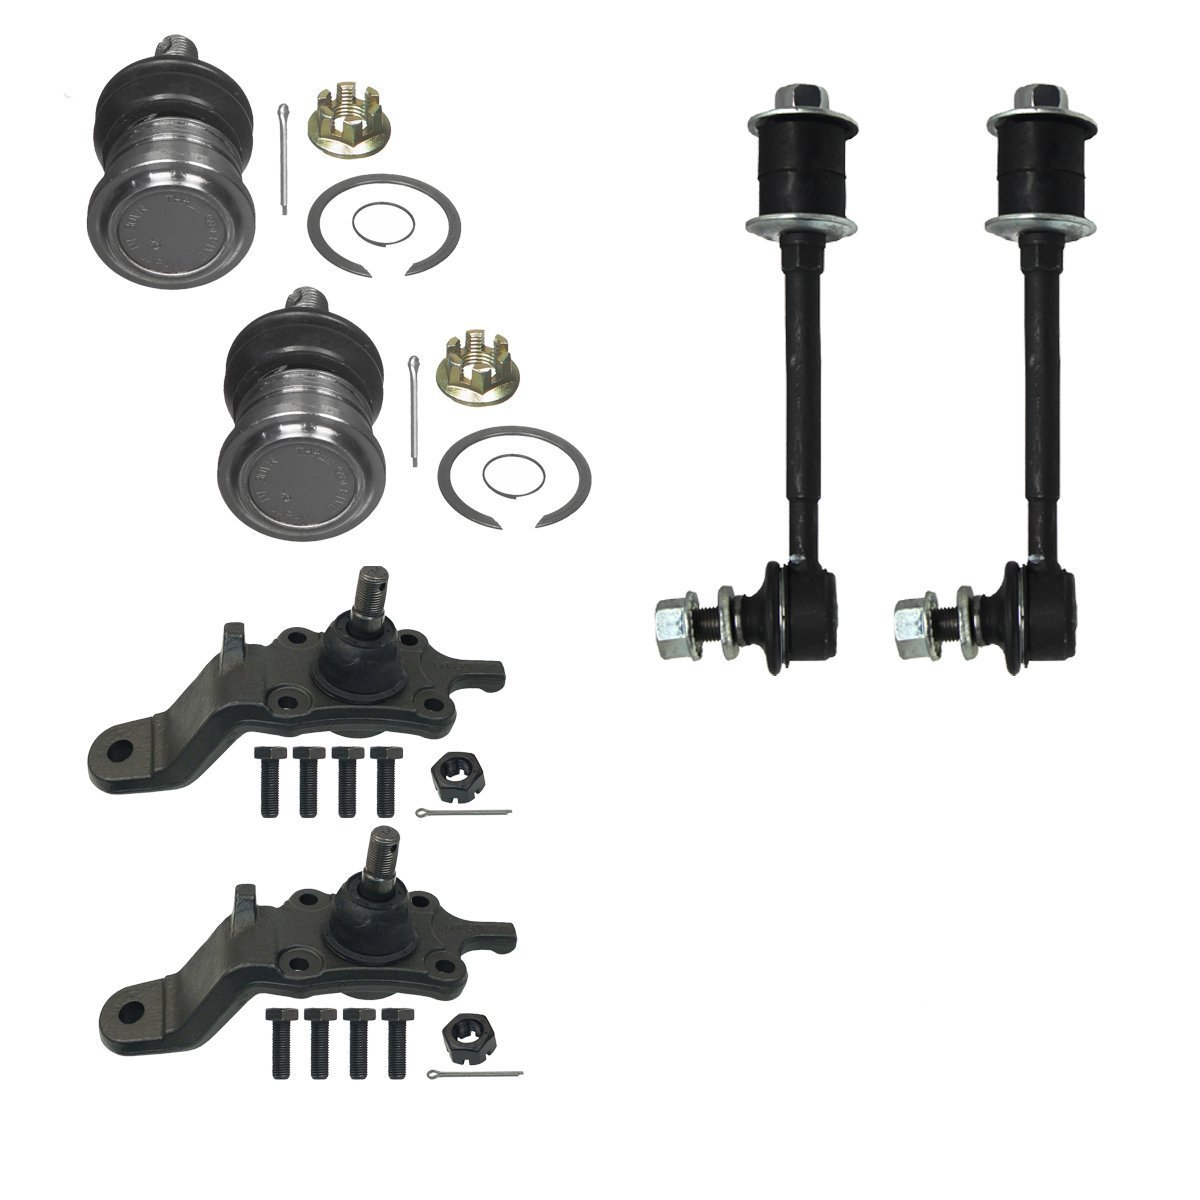 Detroit Axle - Brand New All (4) Front Upper and Lower Ball Joints and Both (2) Front Stabilizer Sway Bar End Links 10-Year Warranty - 1996-2002 Toyota 4Runner [NOT FOR PRE-RUNNER]